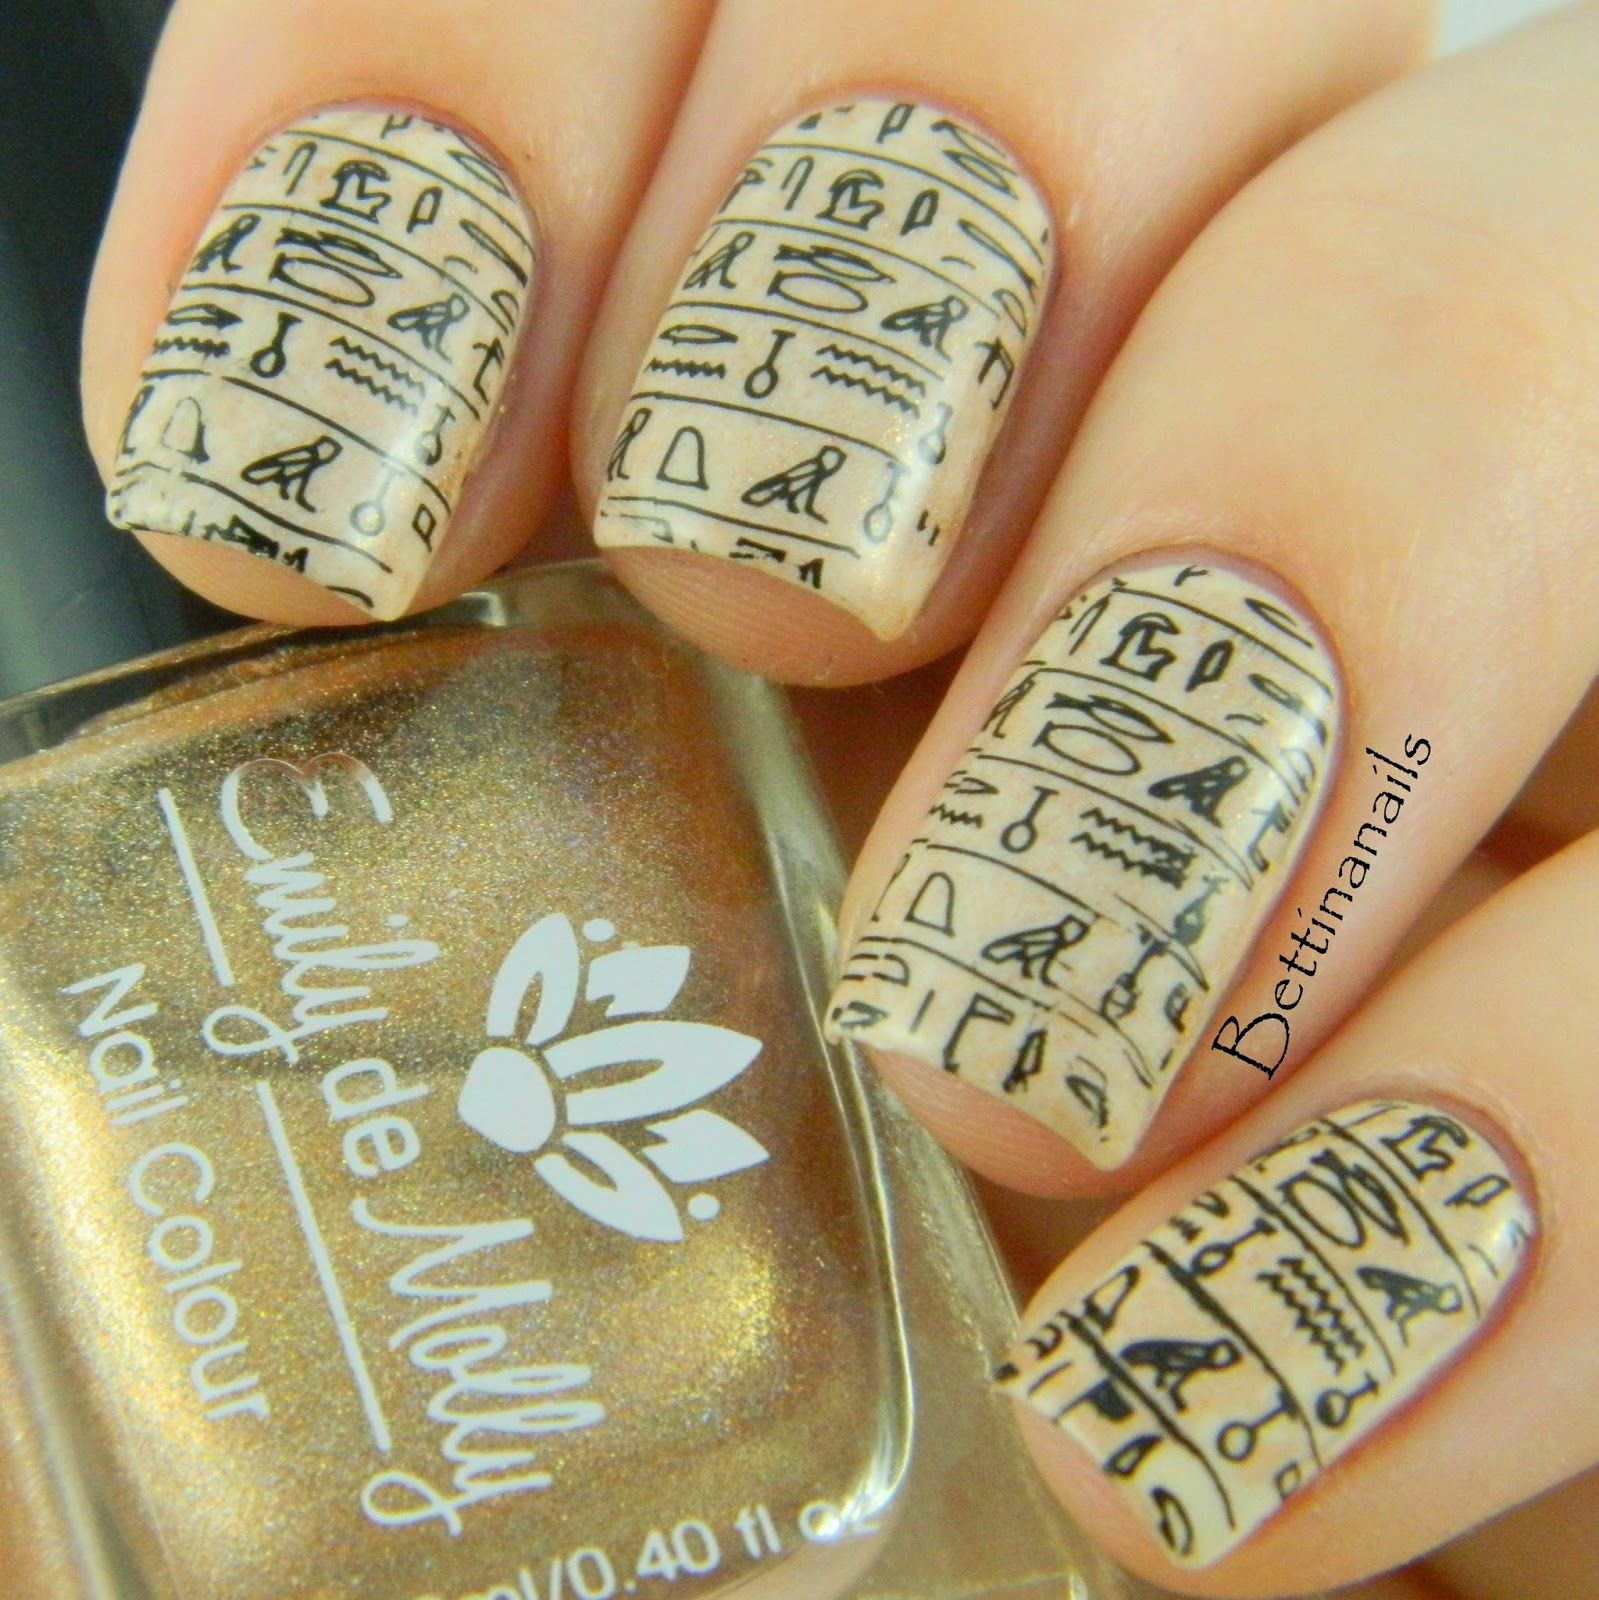 This year I am challenging myself to make some simple nail art tutorial  videos. Here is my first attempt with a quick stamping tutorial. - Bettina Nails: Egyptian Hieroglyphs Nail Art